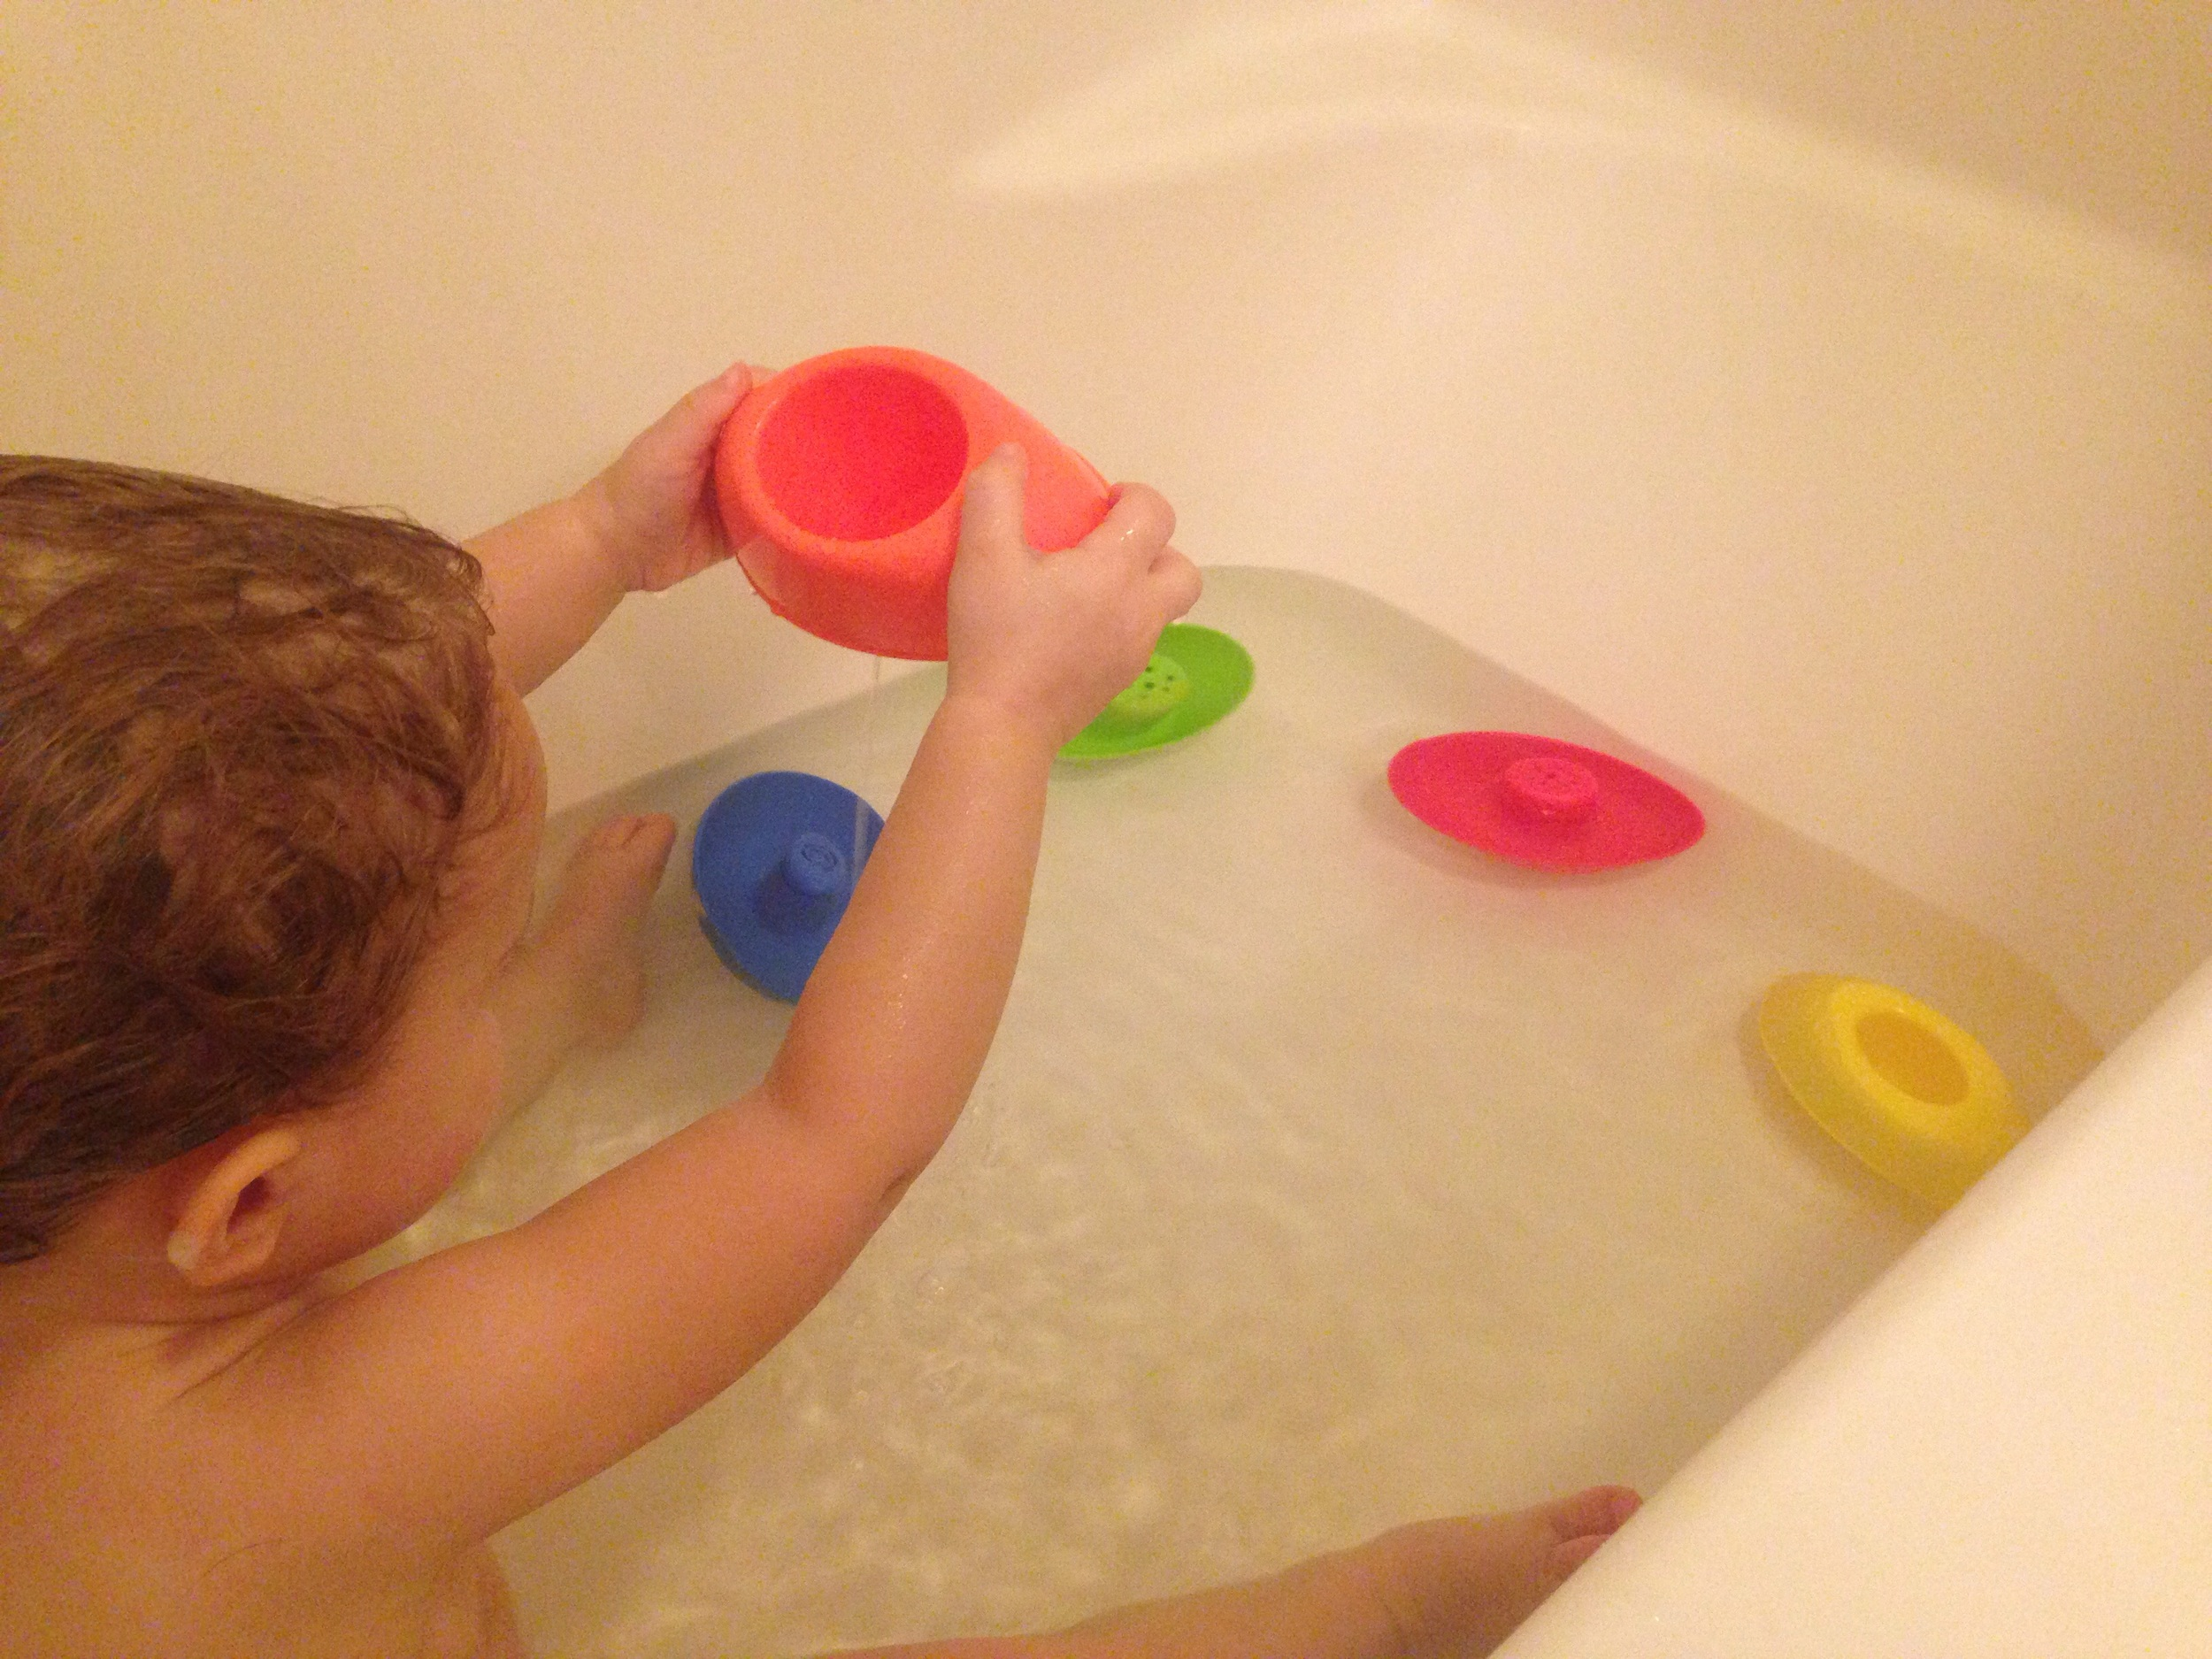 Playing with the Nuby bath boats